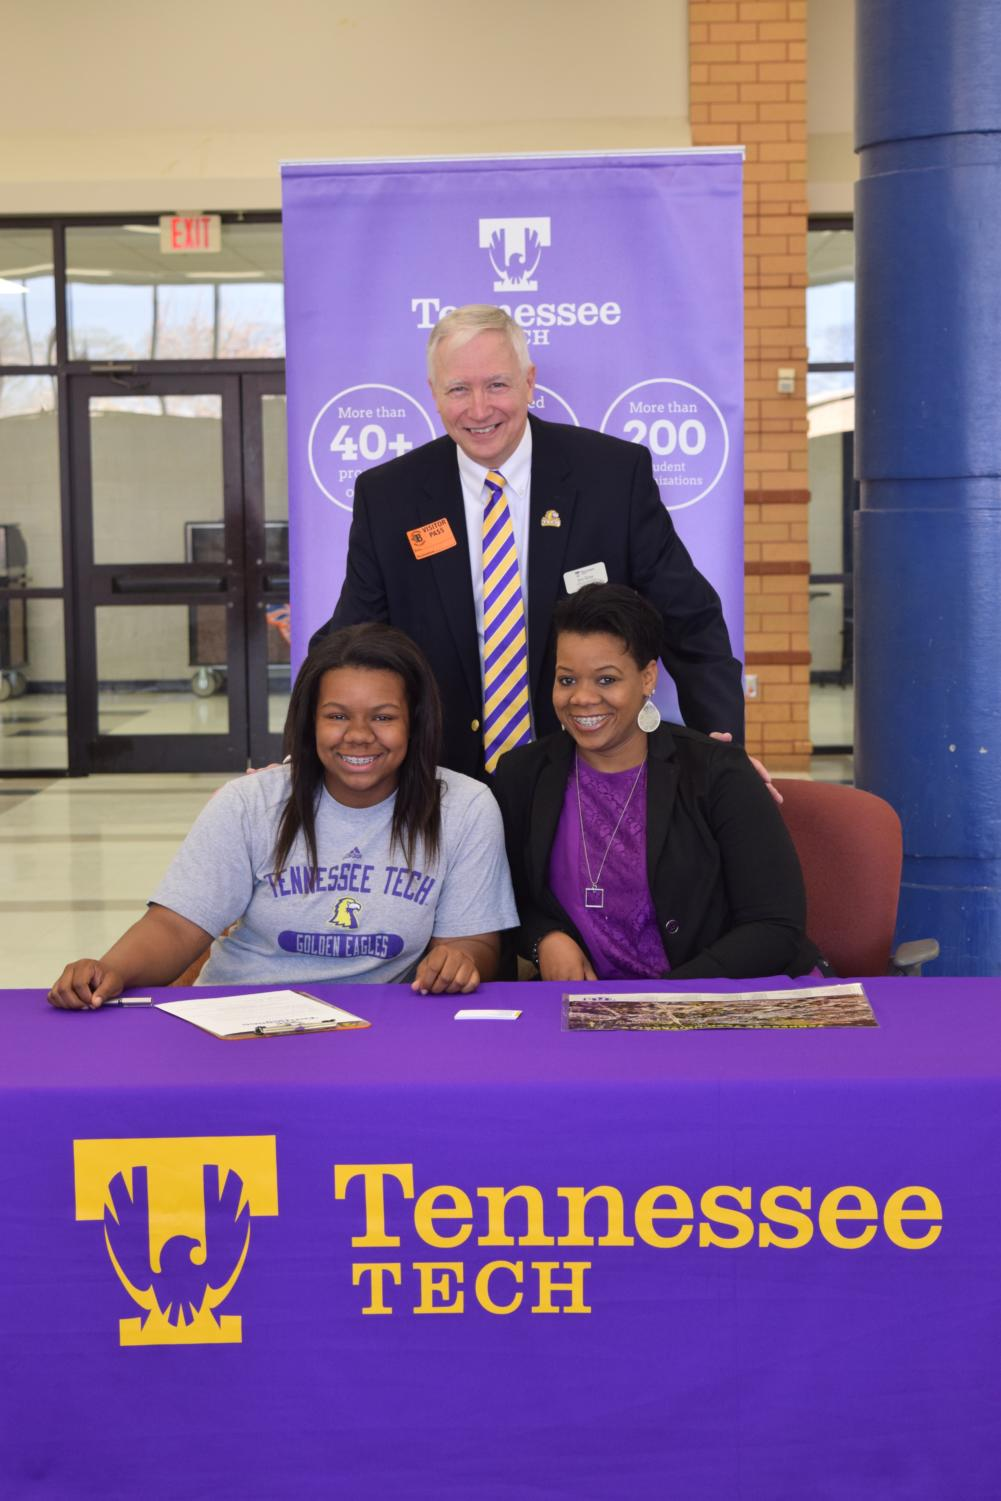 Amyia+Davis+will+attend++Tennessee+Tech+in+the+fall.